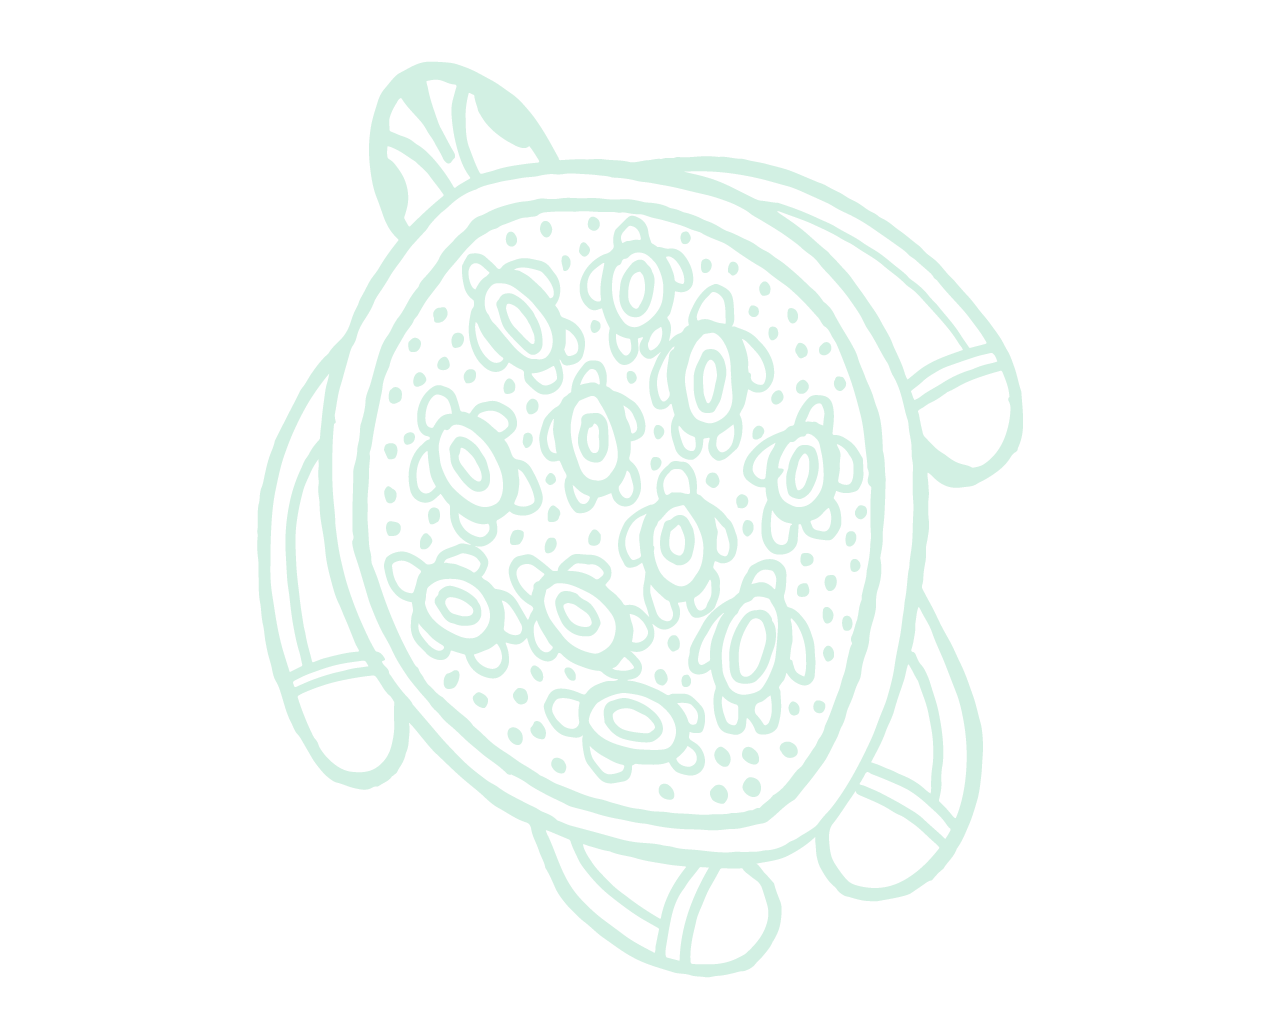 Fade drawing basic. Green turtle brams contact